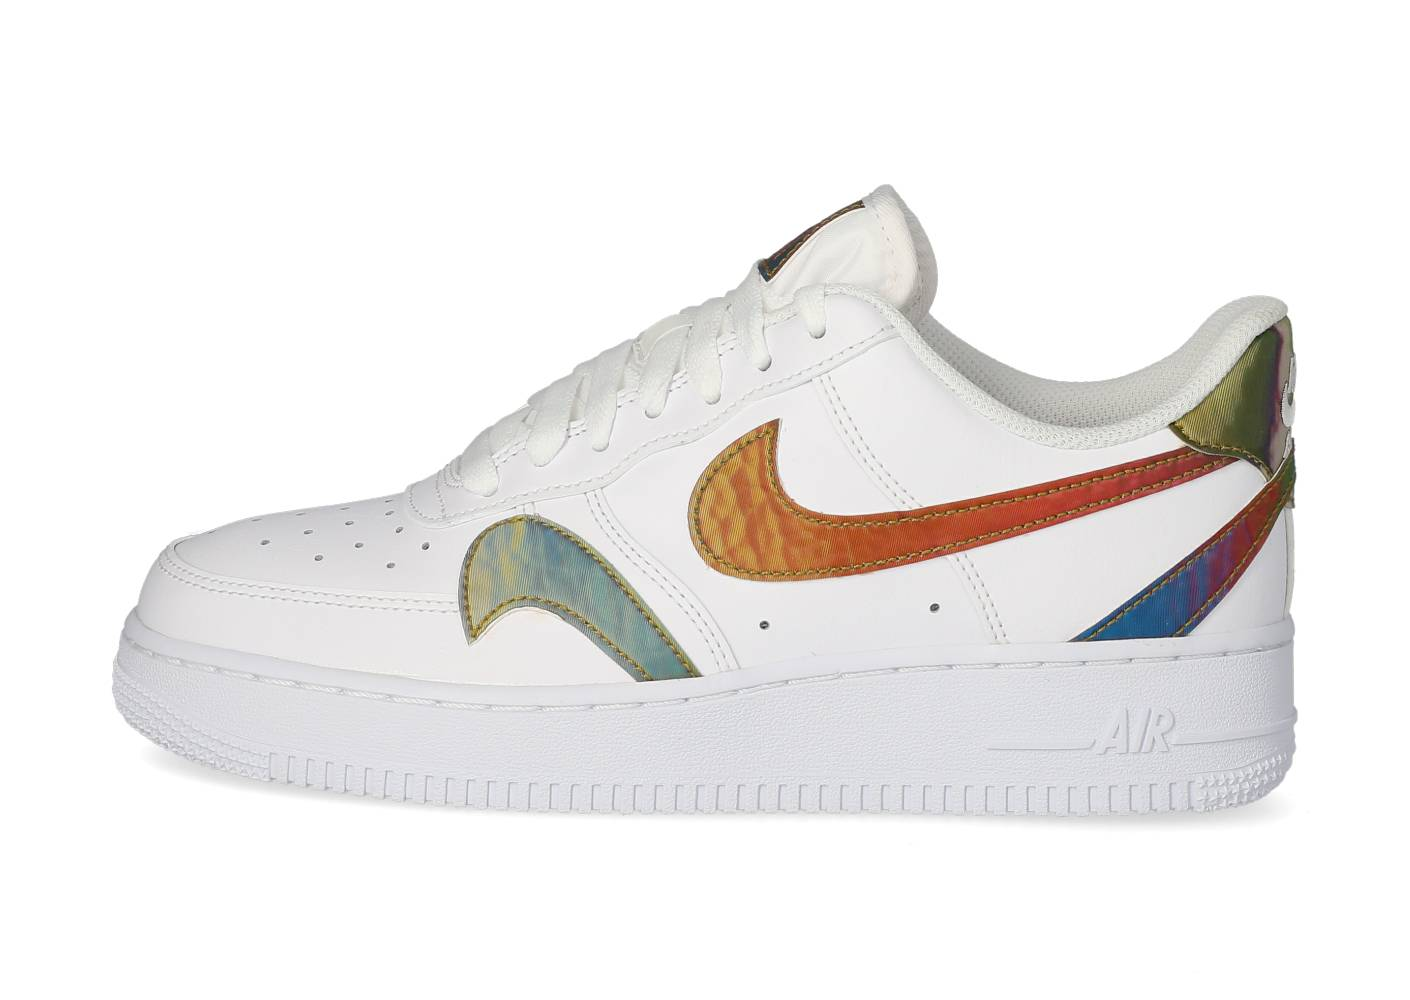 Nike Homme Air Force 1'07 Lv8 Multi Swoosh Blanche Baskets 44